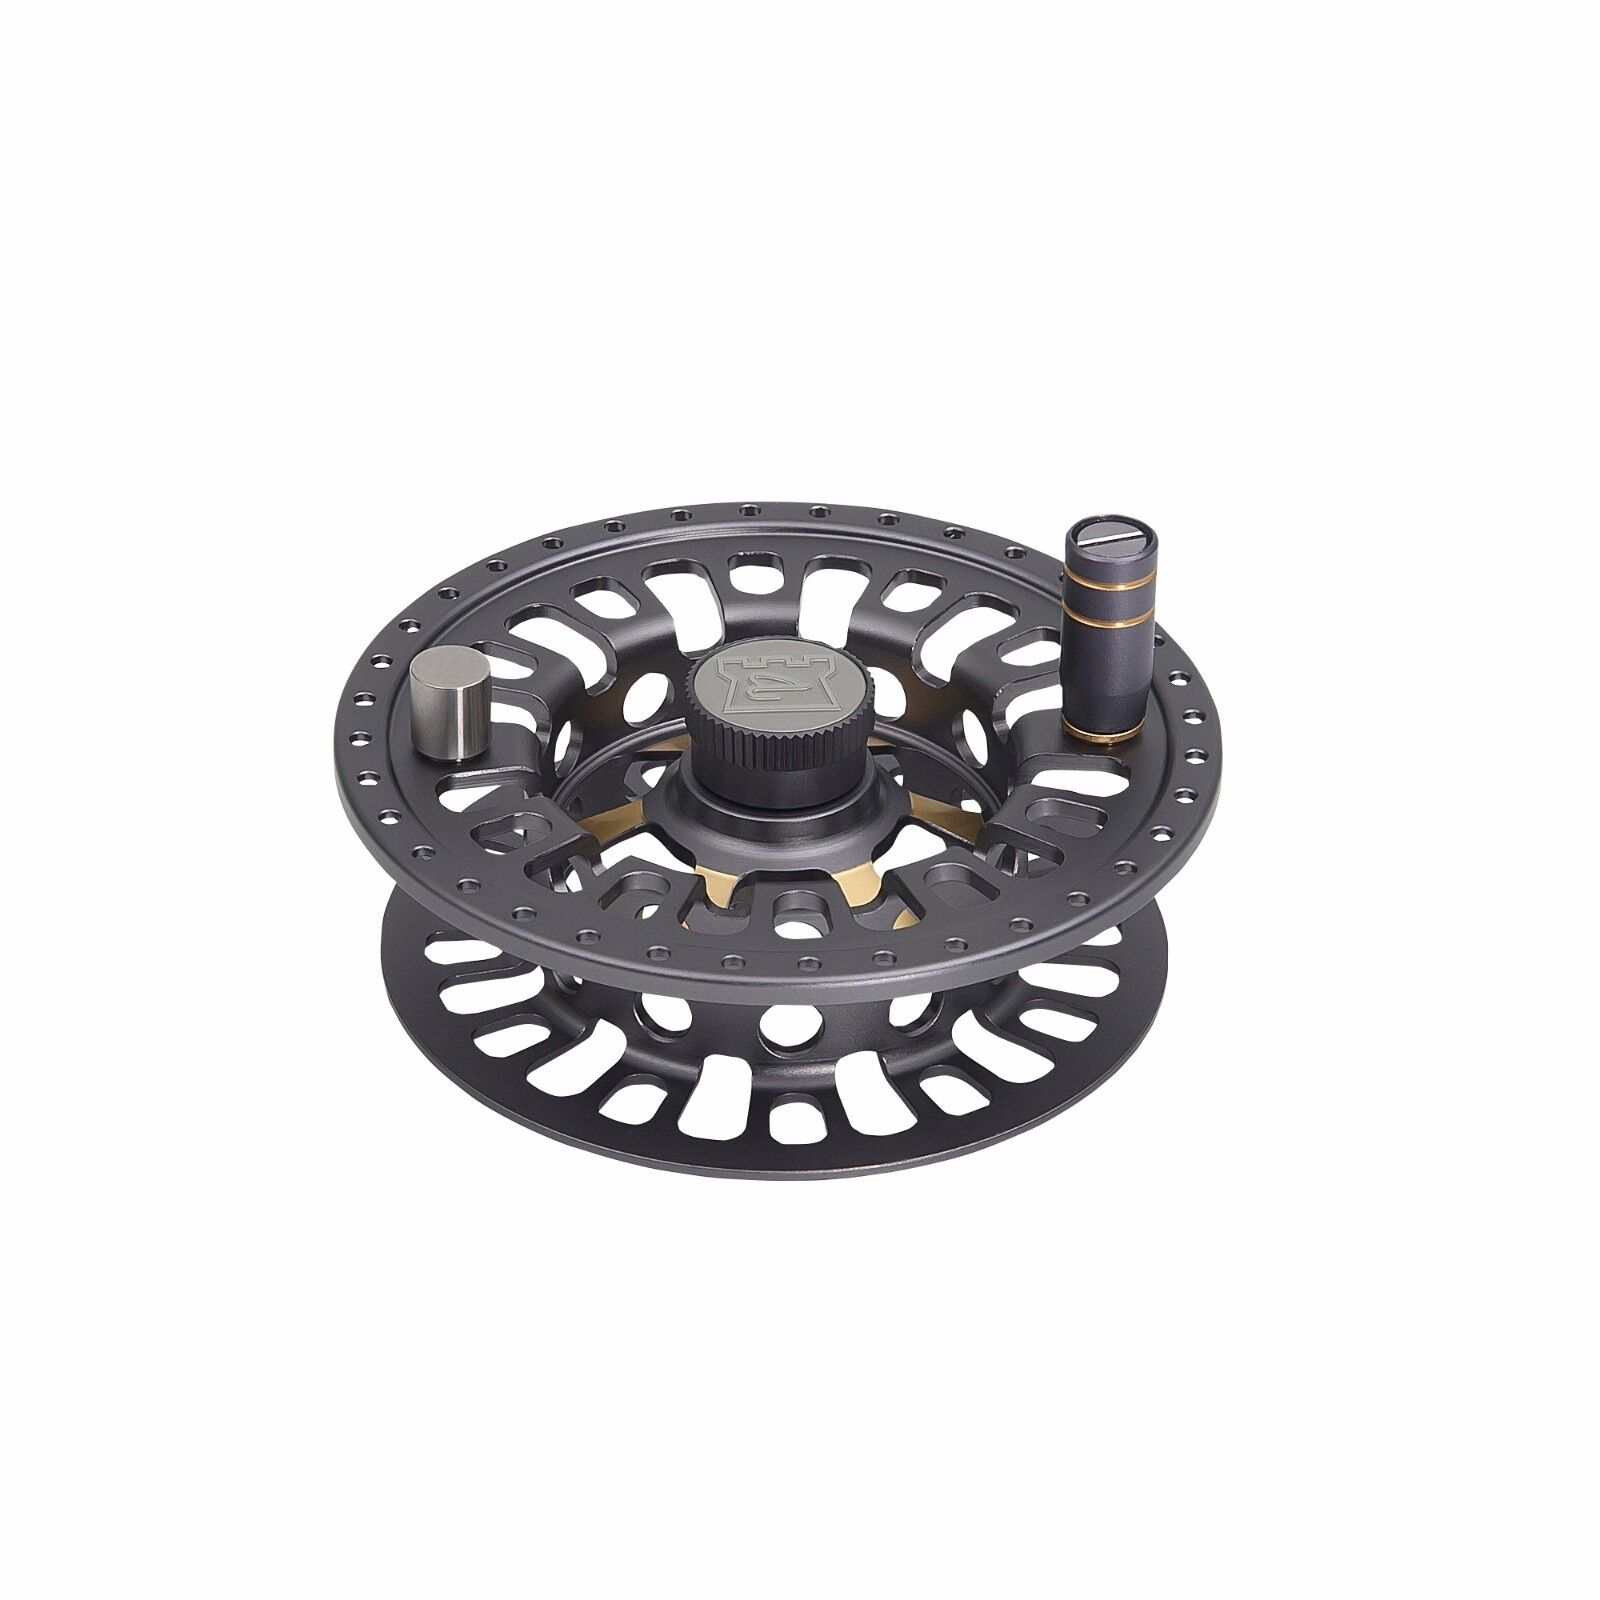 Hardy Ultralite MA Spare Spool   the best online store offer